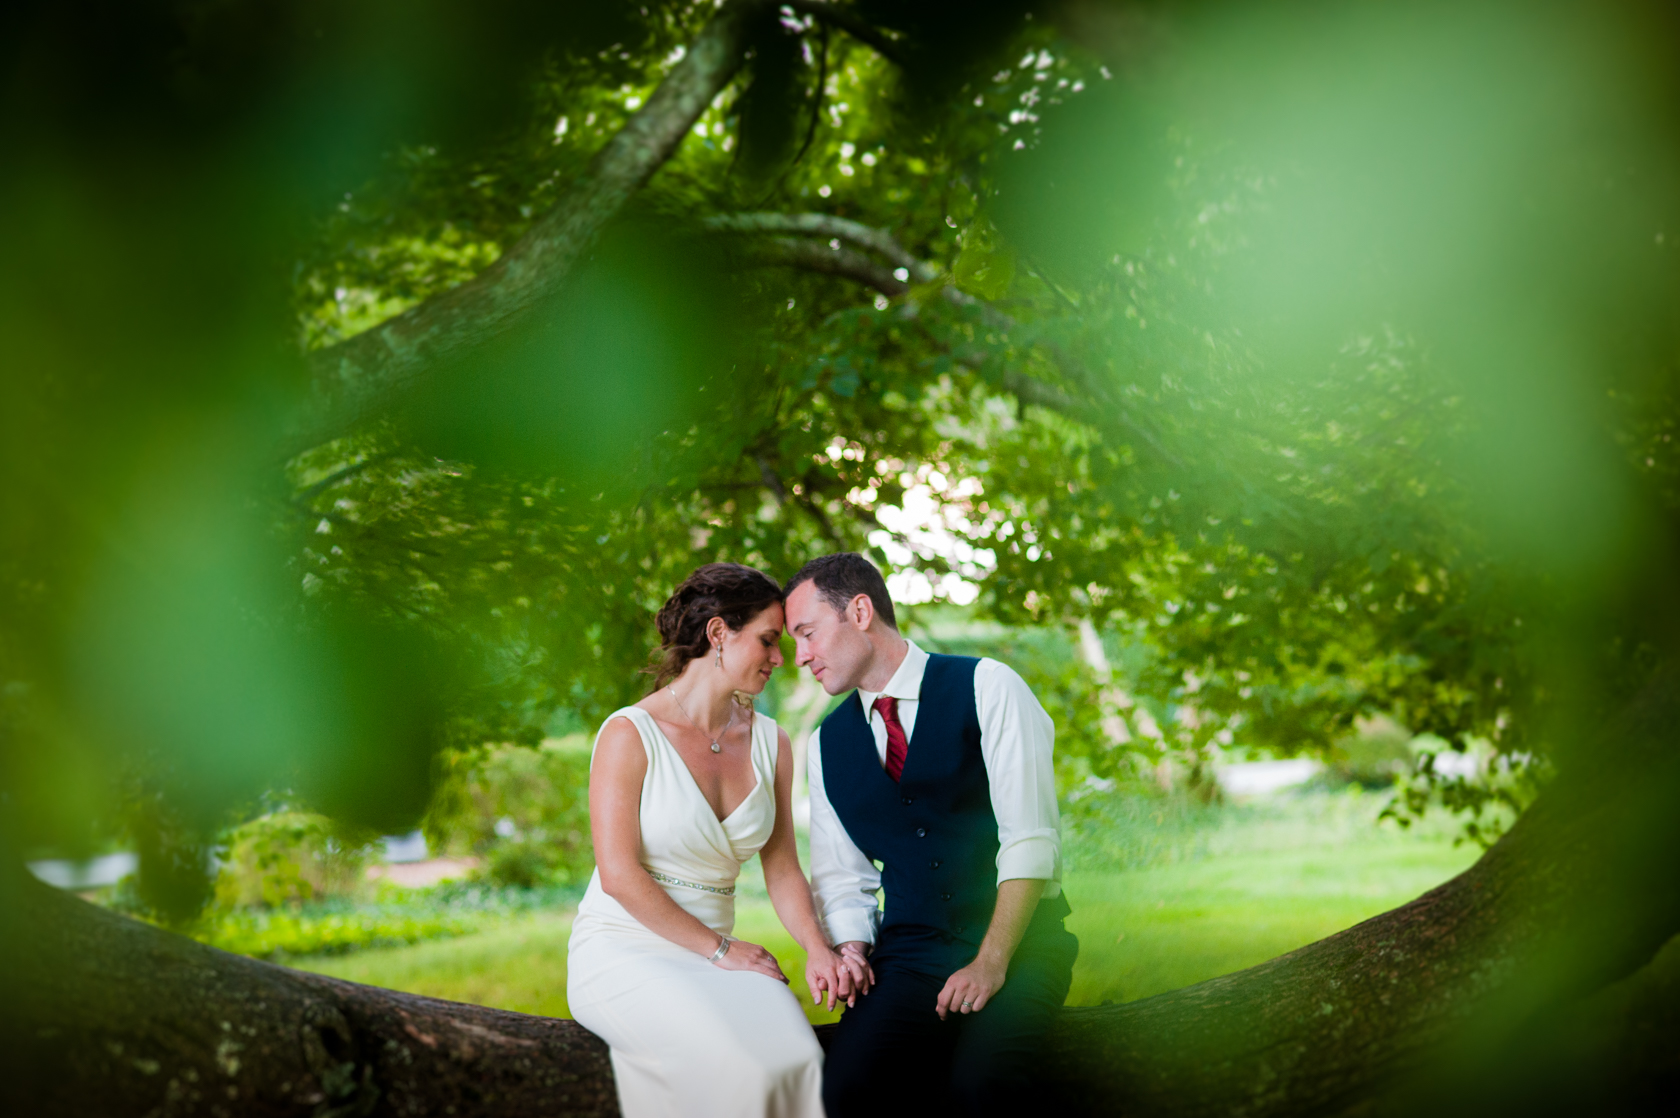 gorgeous tree surrounding recently married bride and groom